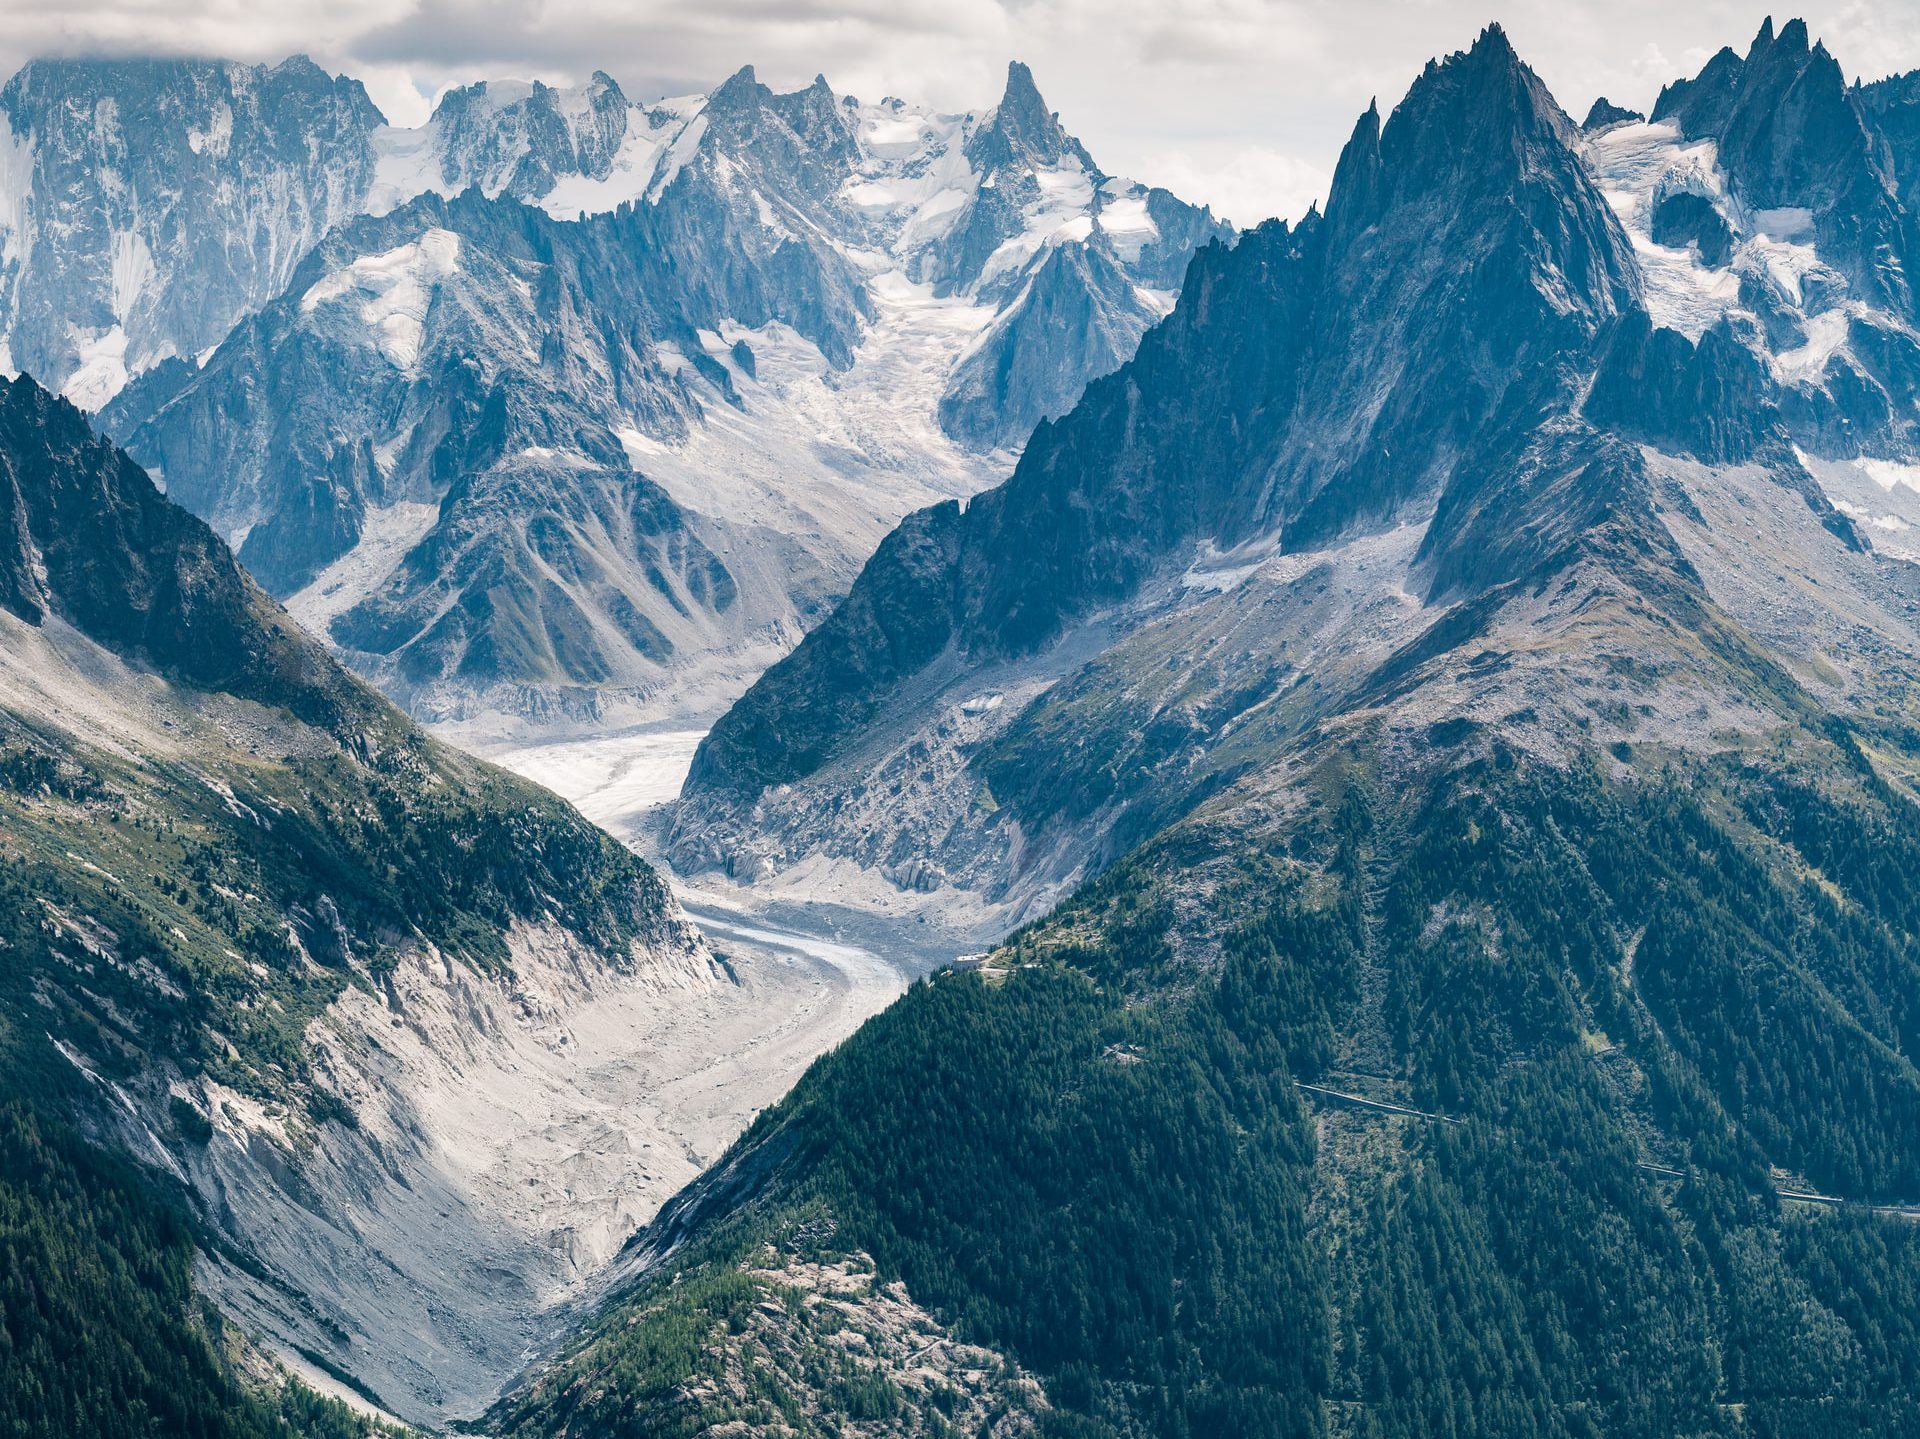 Add mountains to your travel bucket list